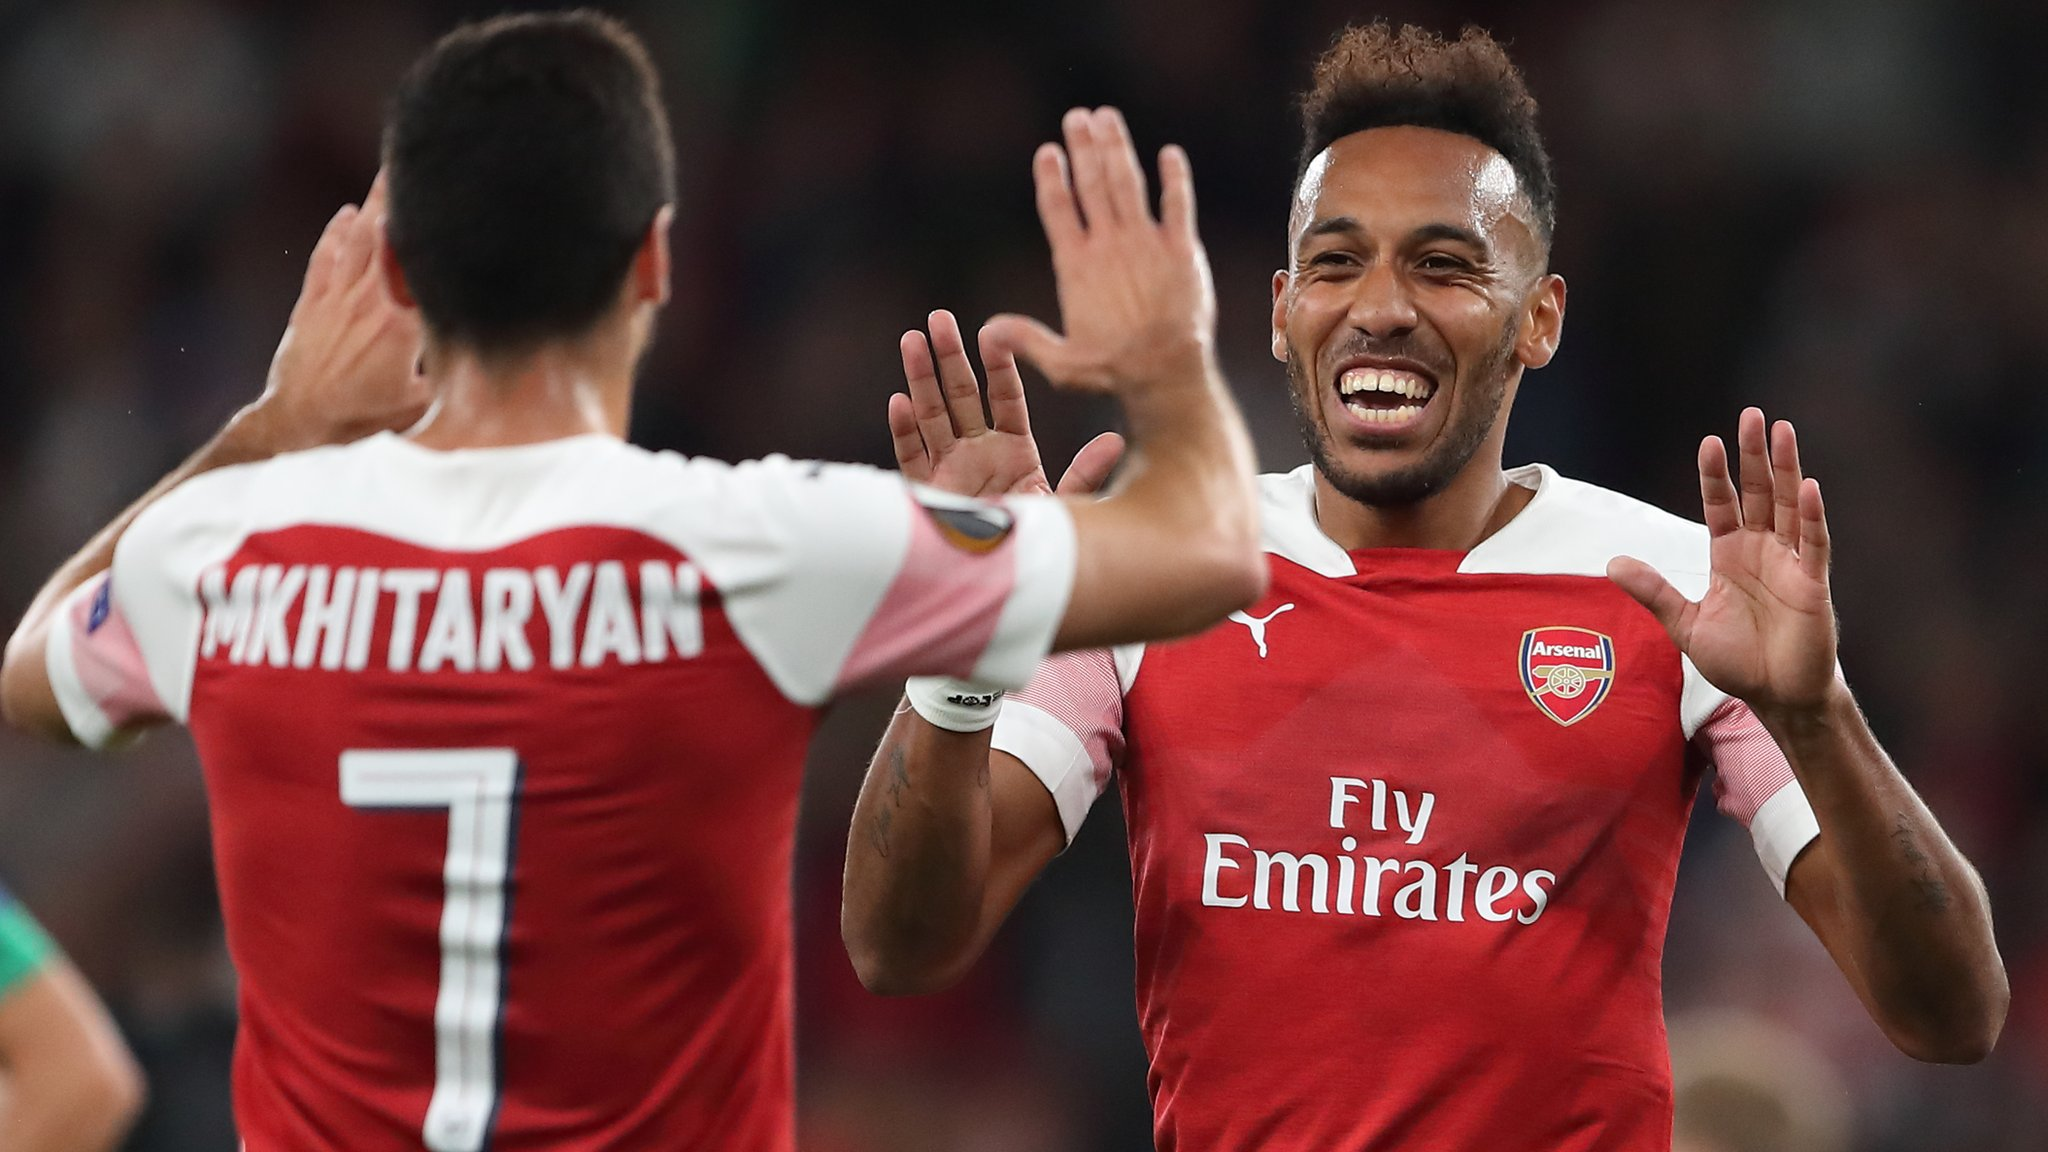 Arsenal 'must improve a lot of things' to catch leaders - Emery